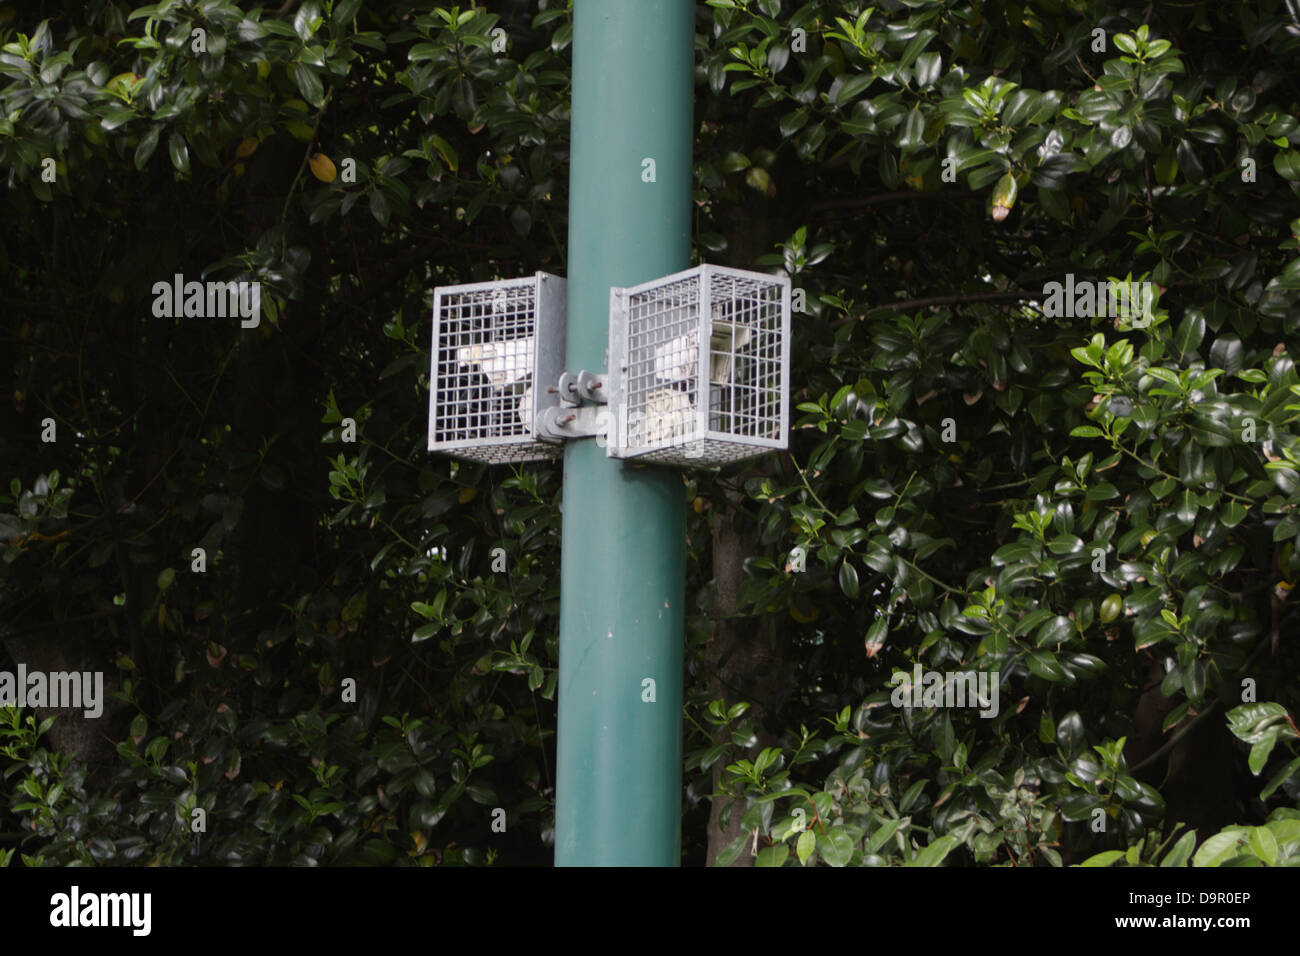 redwall out door passive infra red sensors, used for CCTV purposes to detect movement and alert camera to said movement. - Stock Image